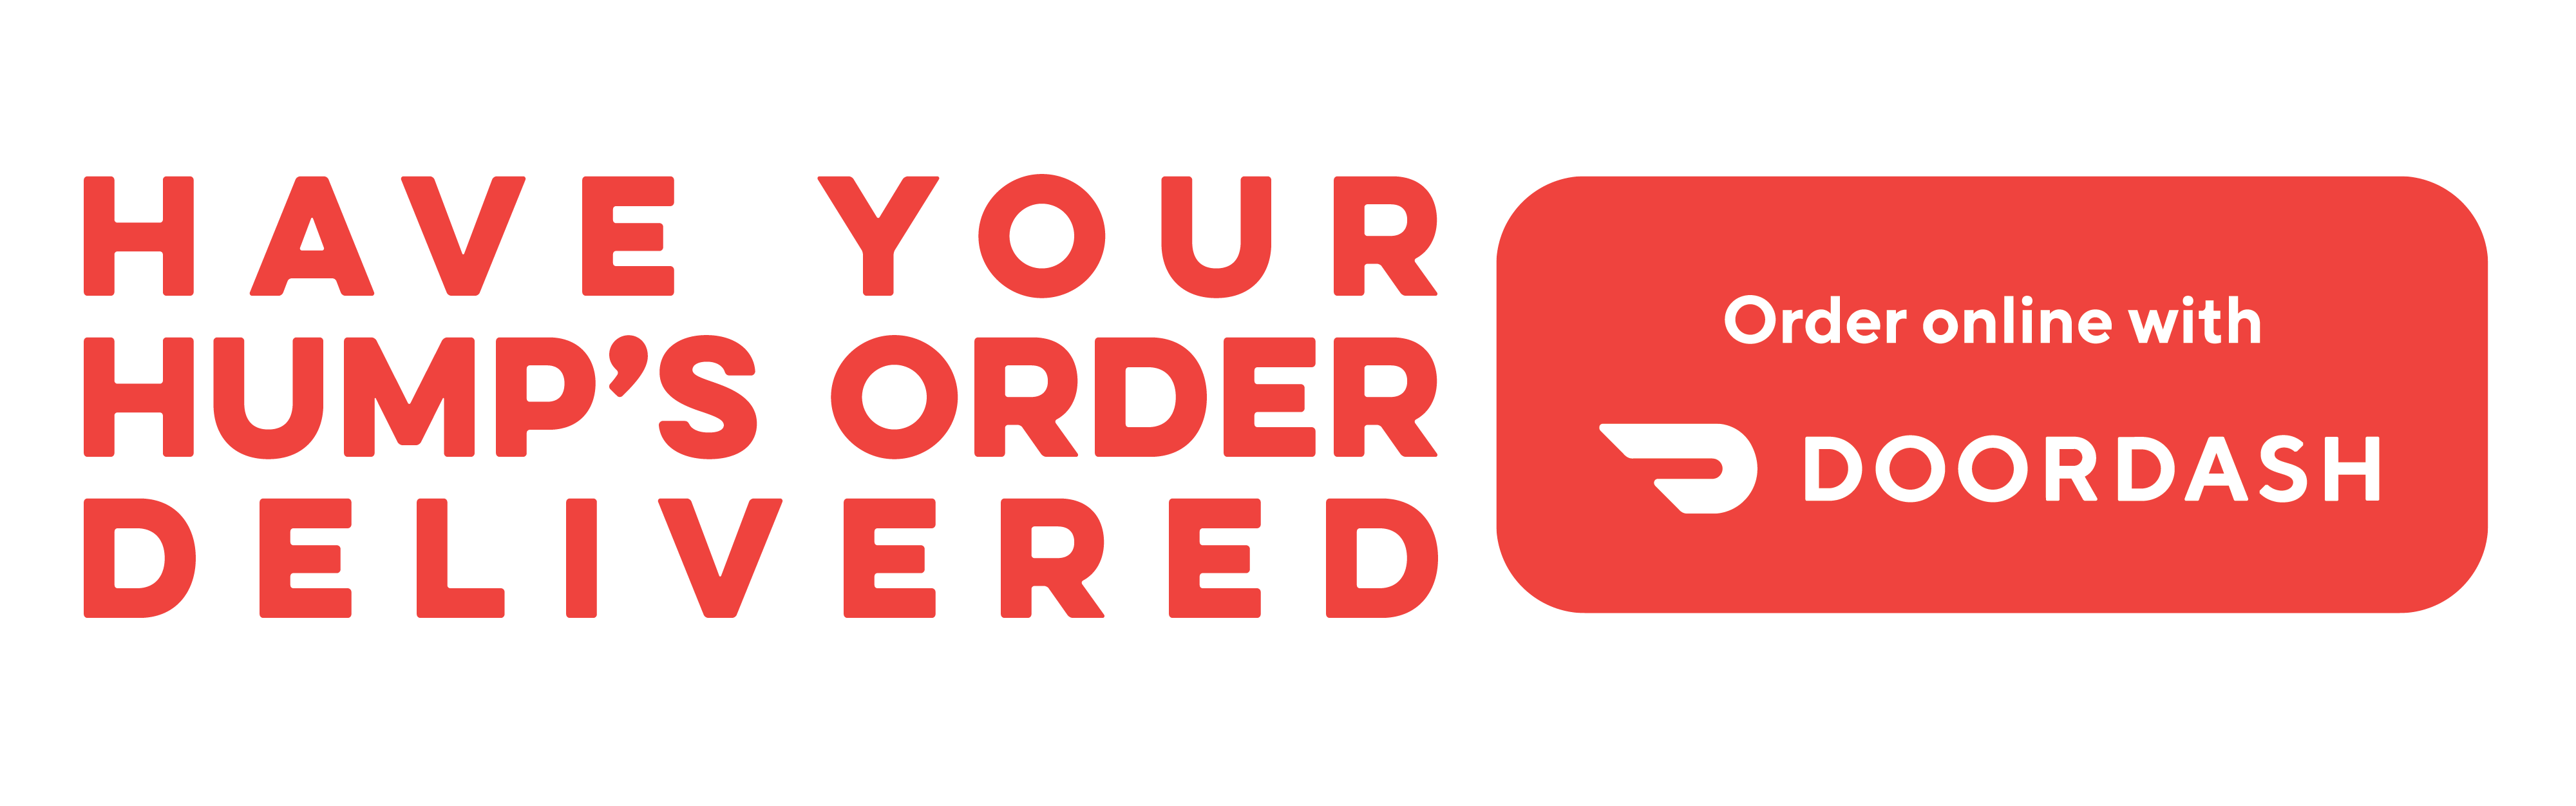 Have your Hump's delivered by DoorDash